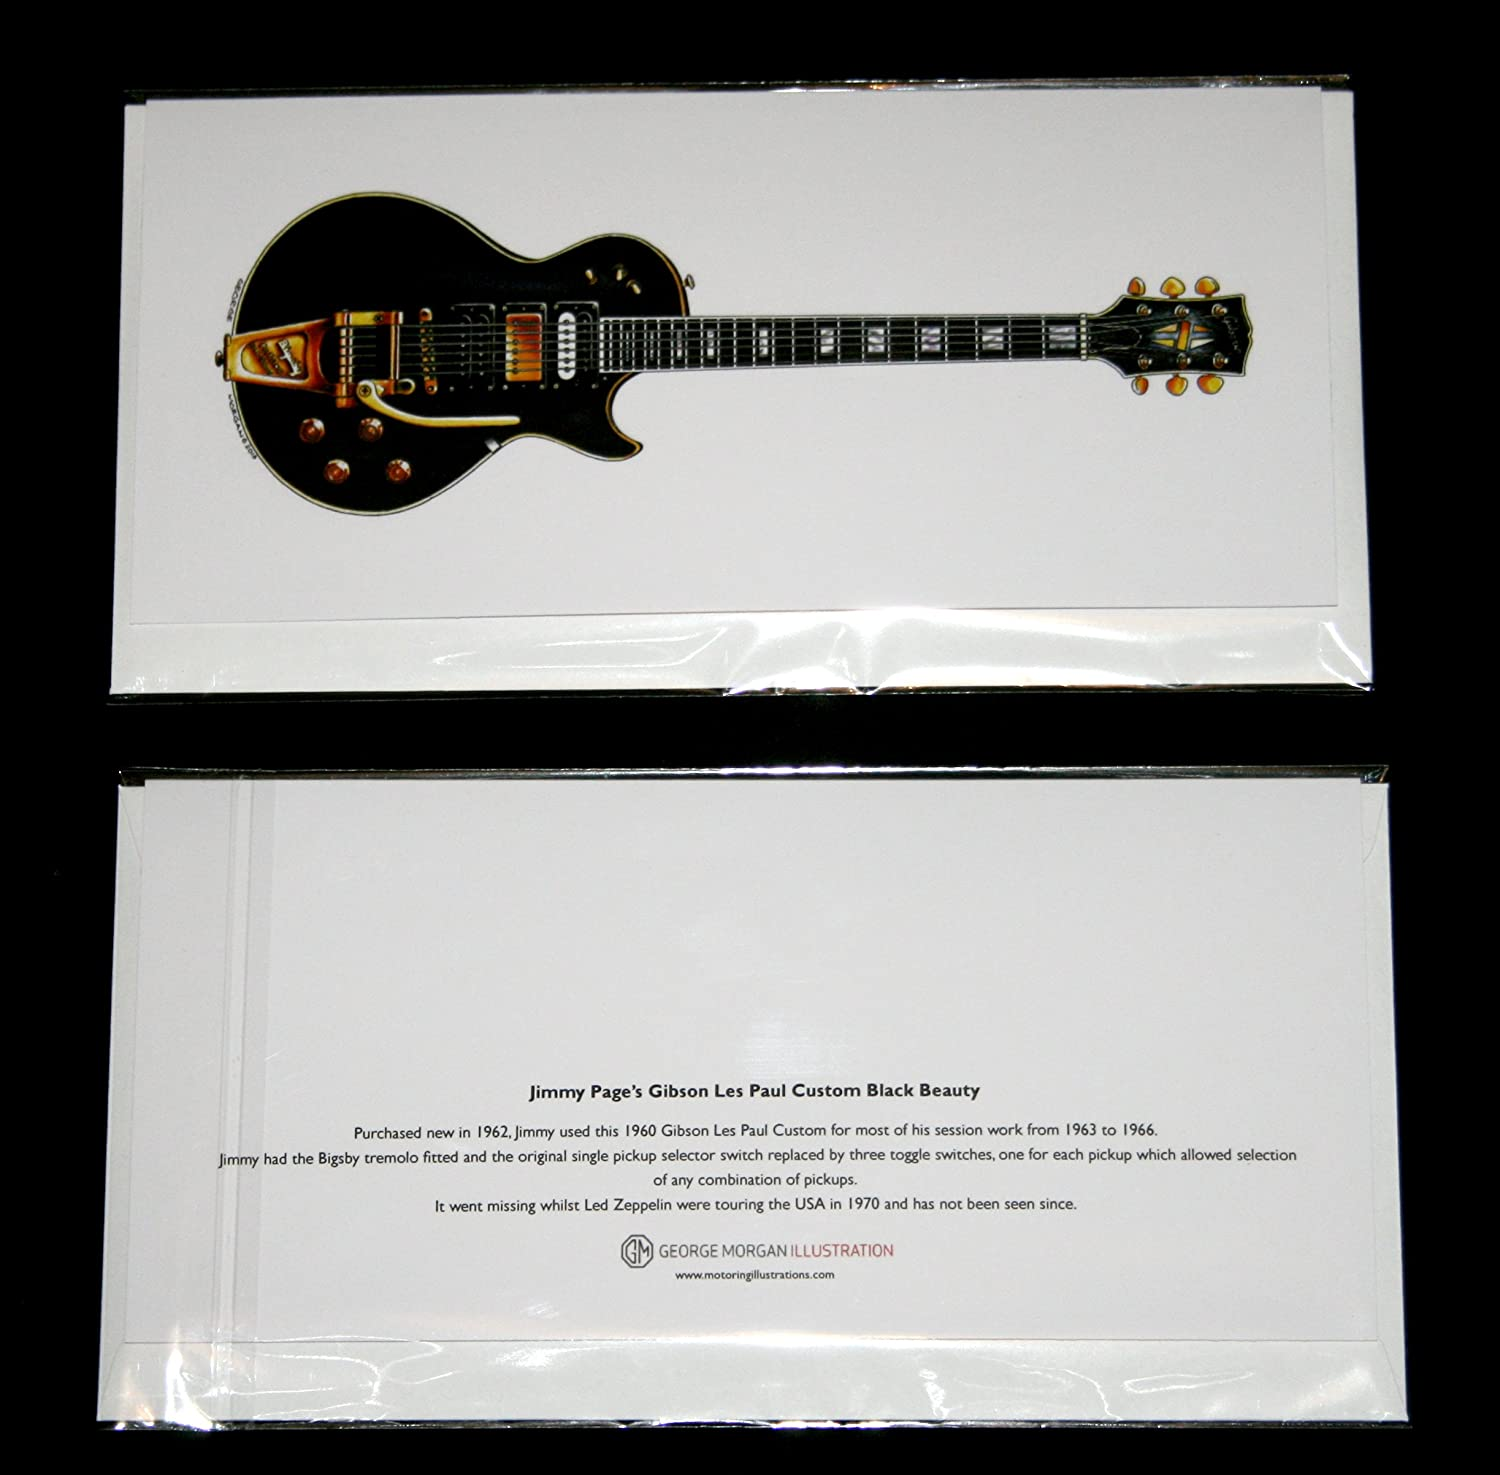 DL size Jimmy Page/'s 1960 Gibson Les Paul Custom Black Beauty Greeting Card